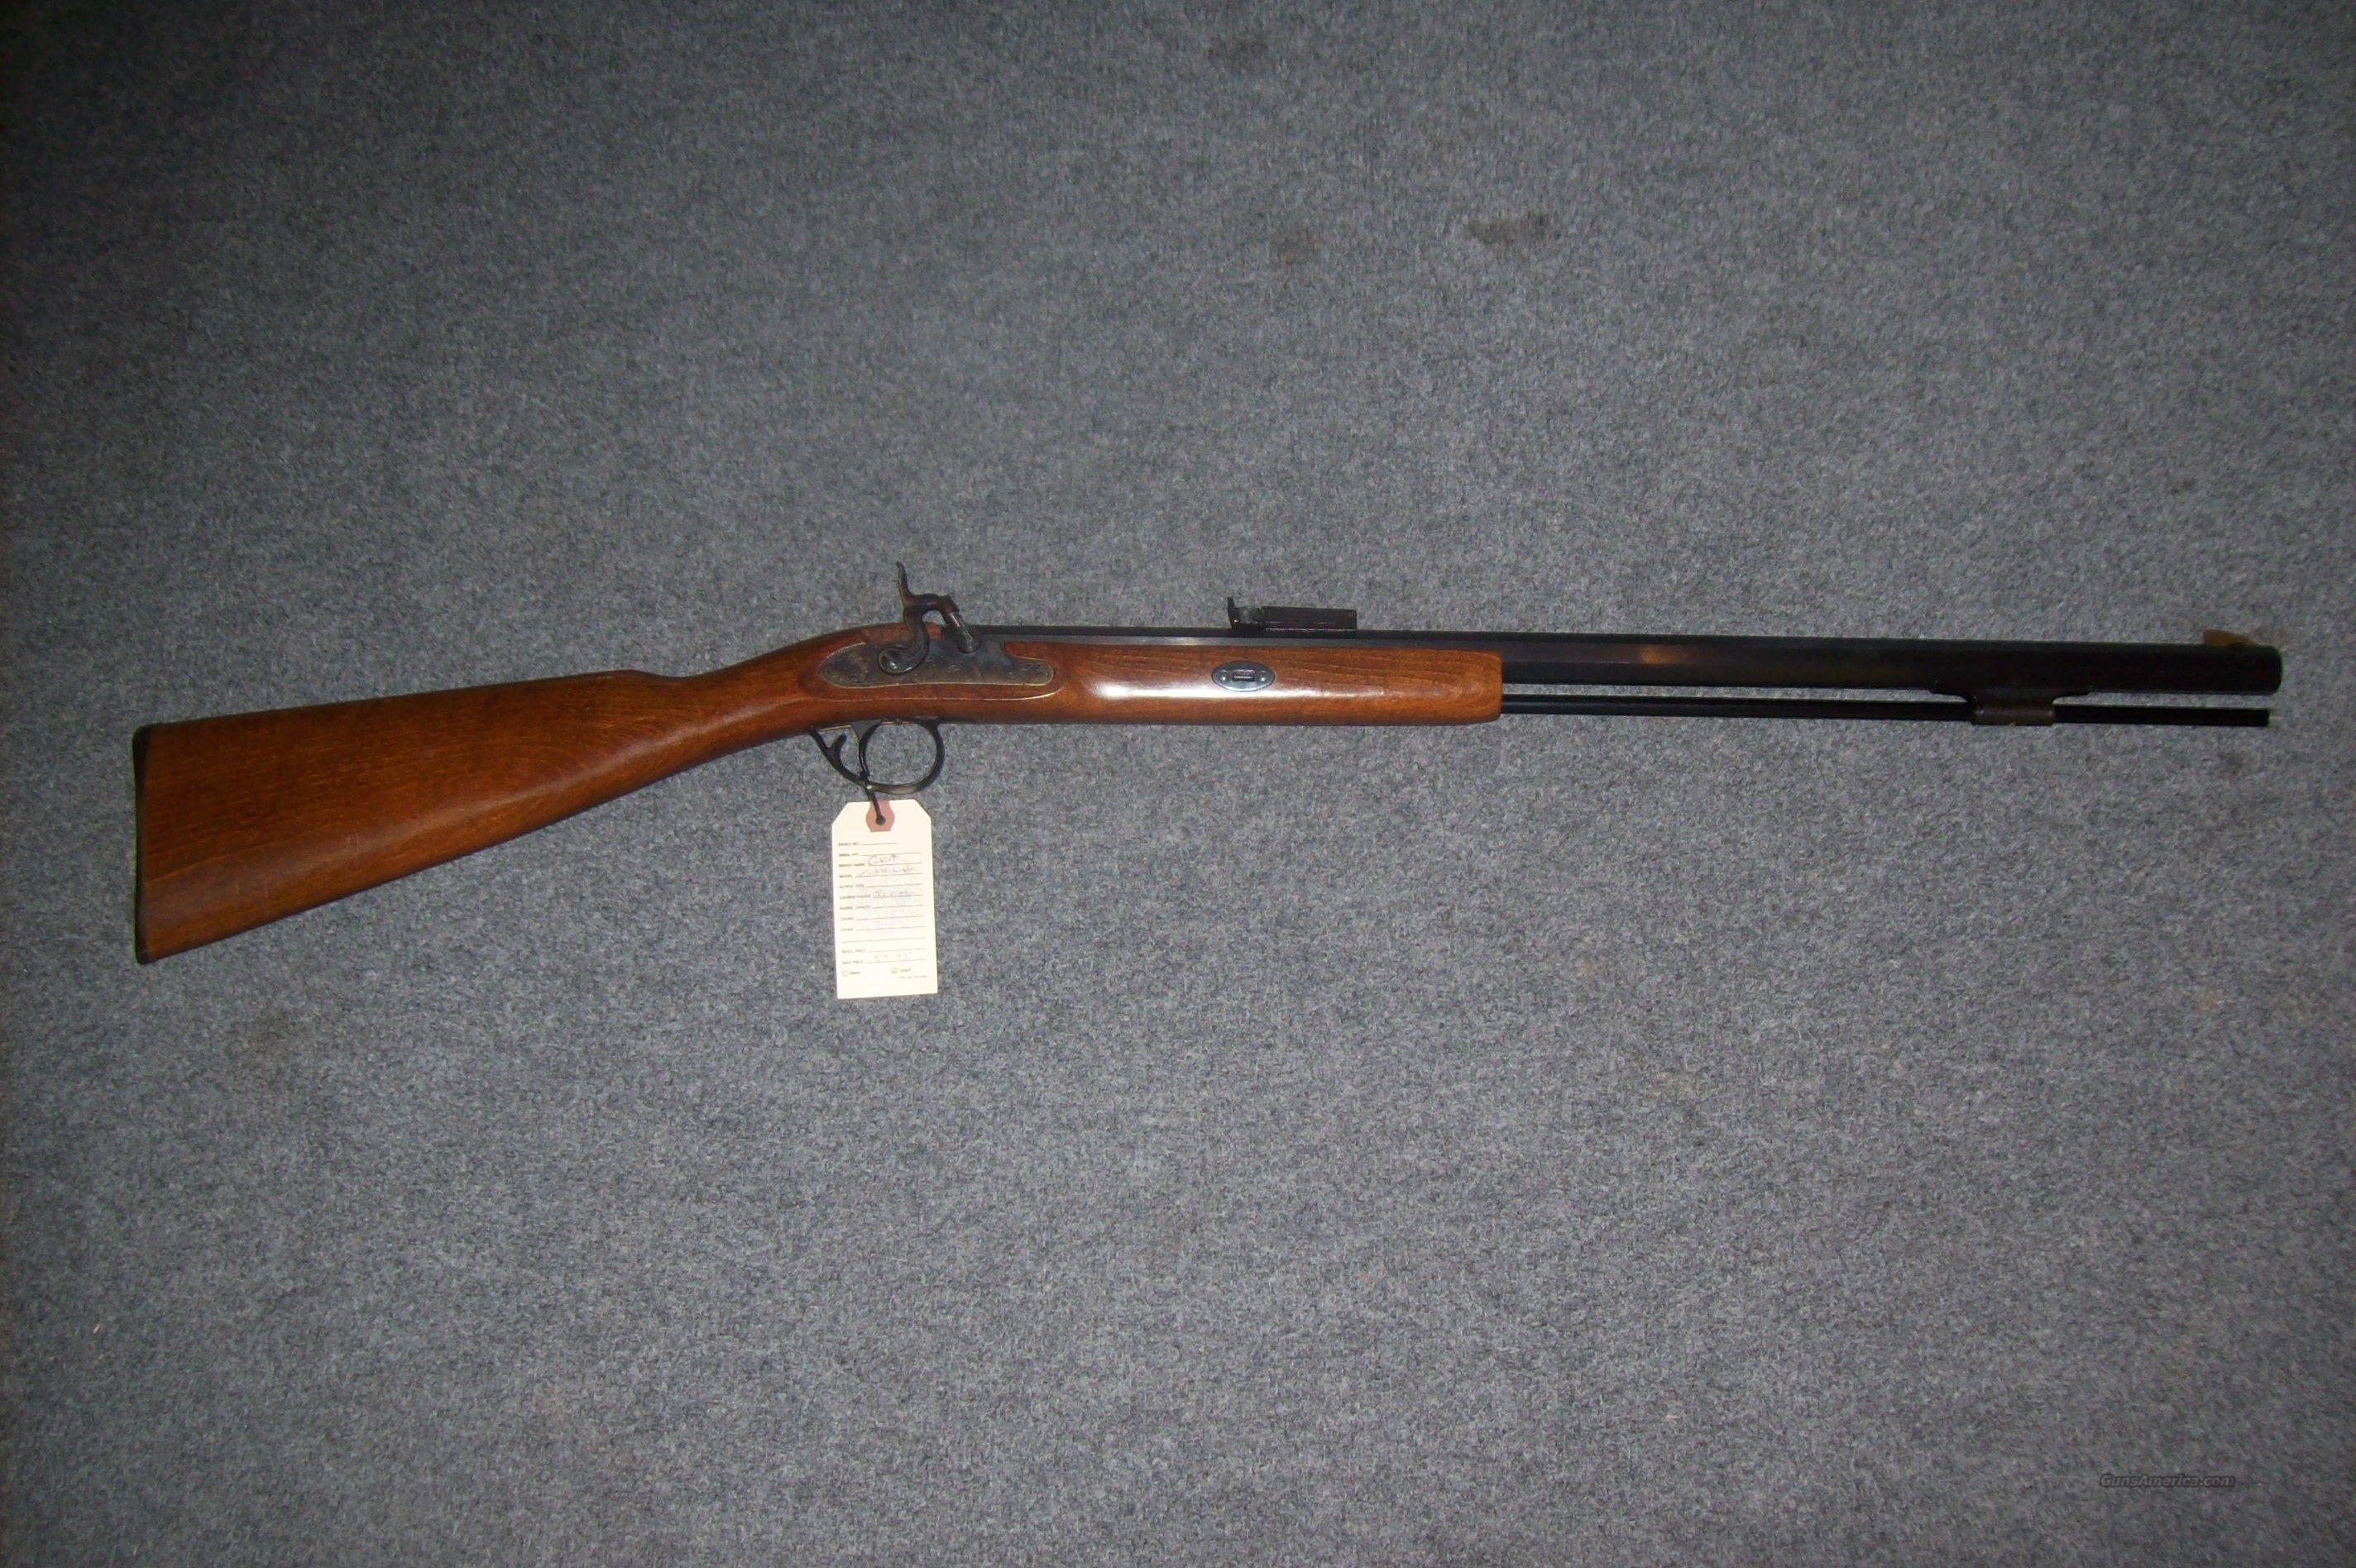 CVA .50 Cal Muzzleloader Wood  Guns > Rifles > Connecticut  Valley Arms (CVA) Rifles > Modern Muzzleloaders